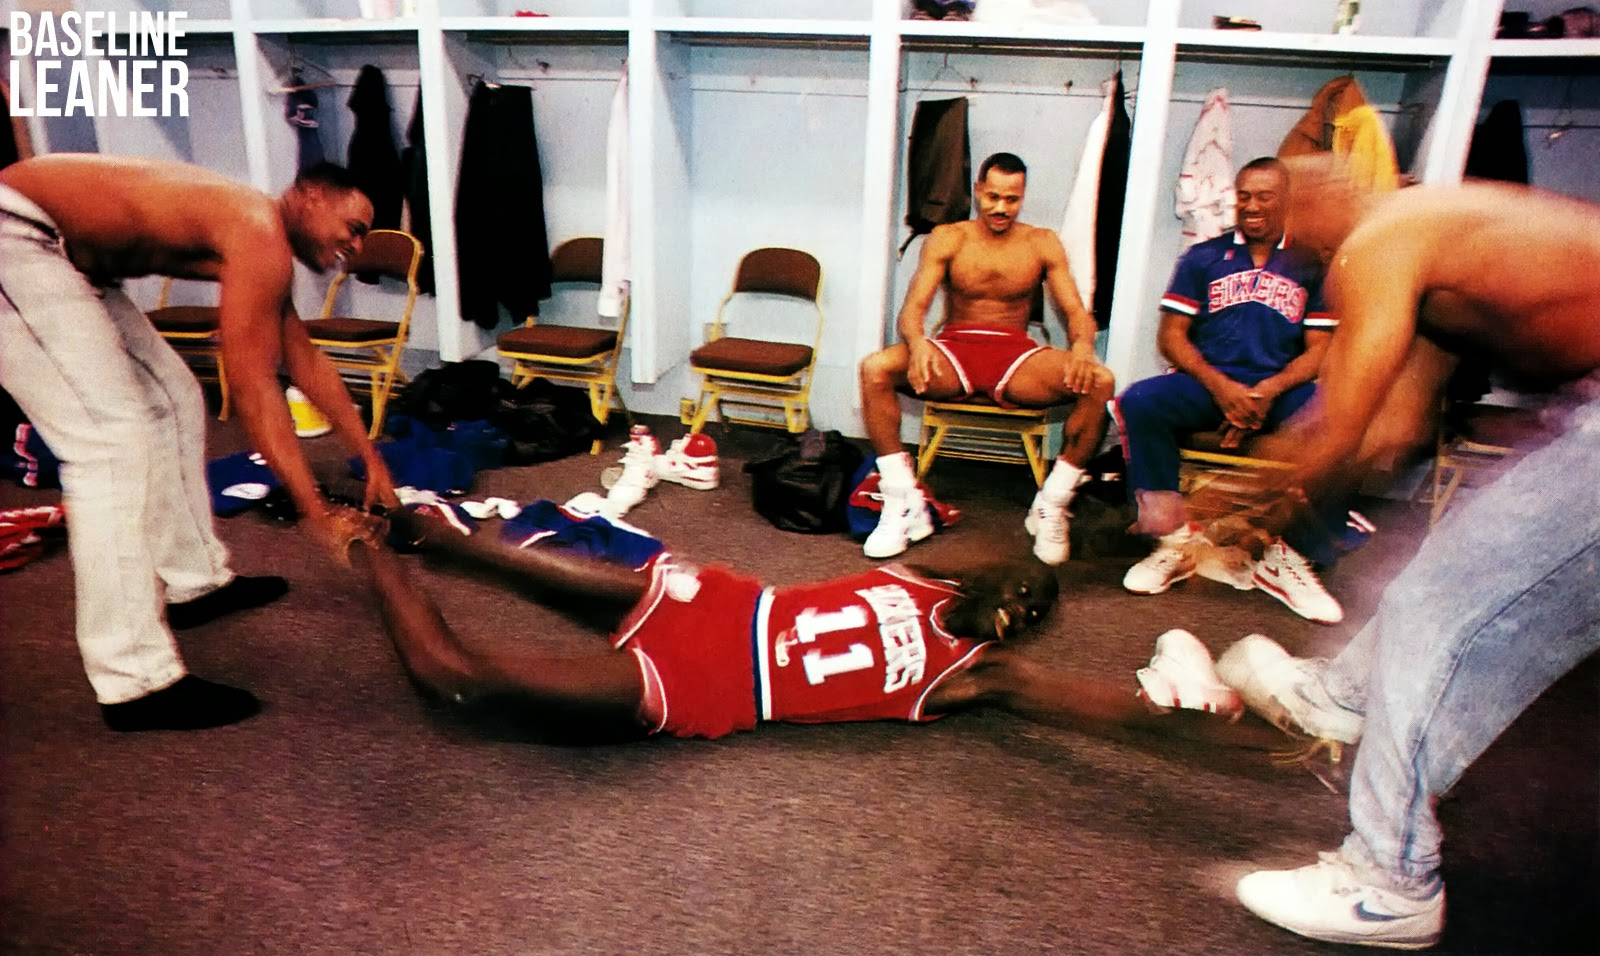 Baseline Leaner Manute Bol Rick Mahorn and Sir Charles in a